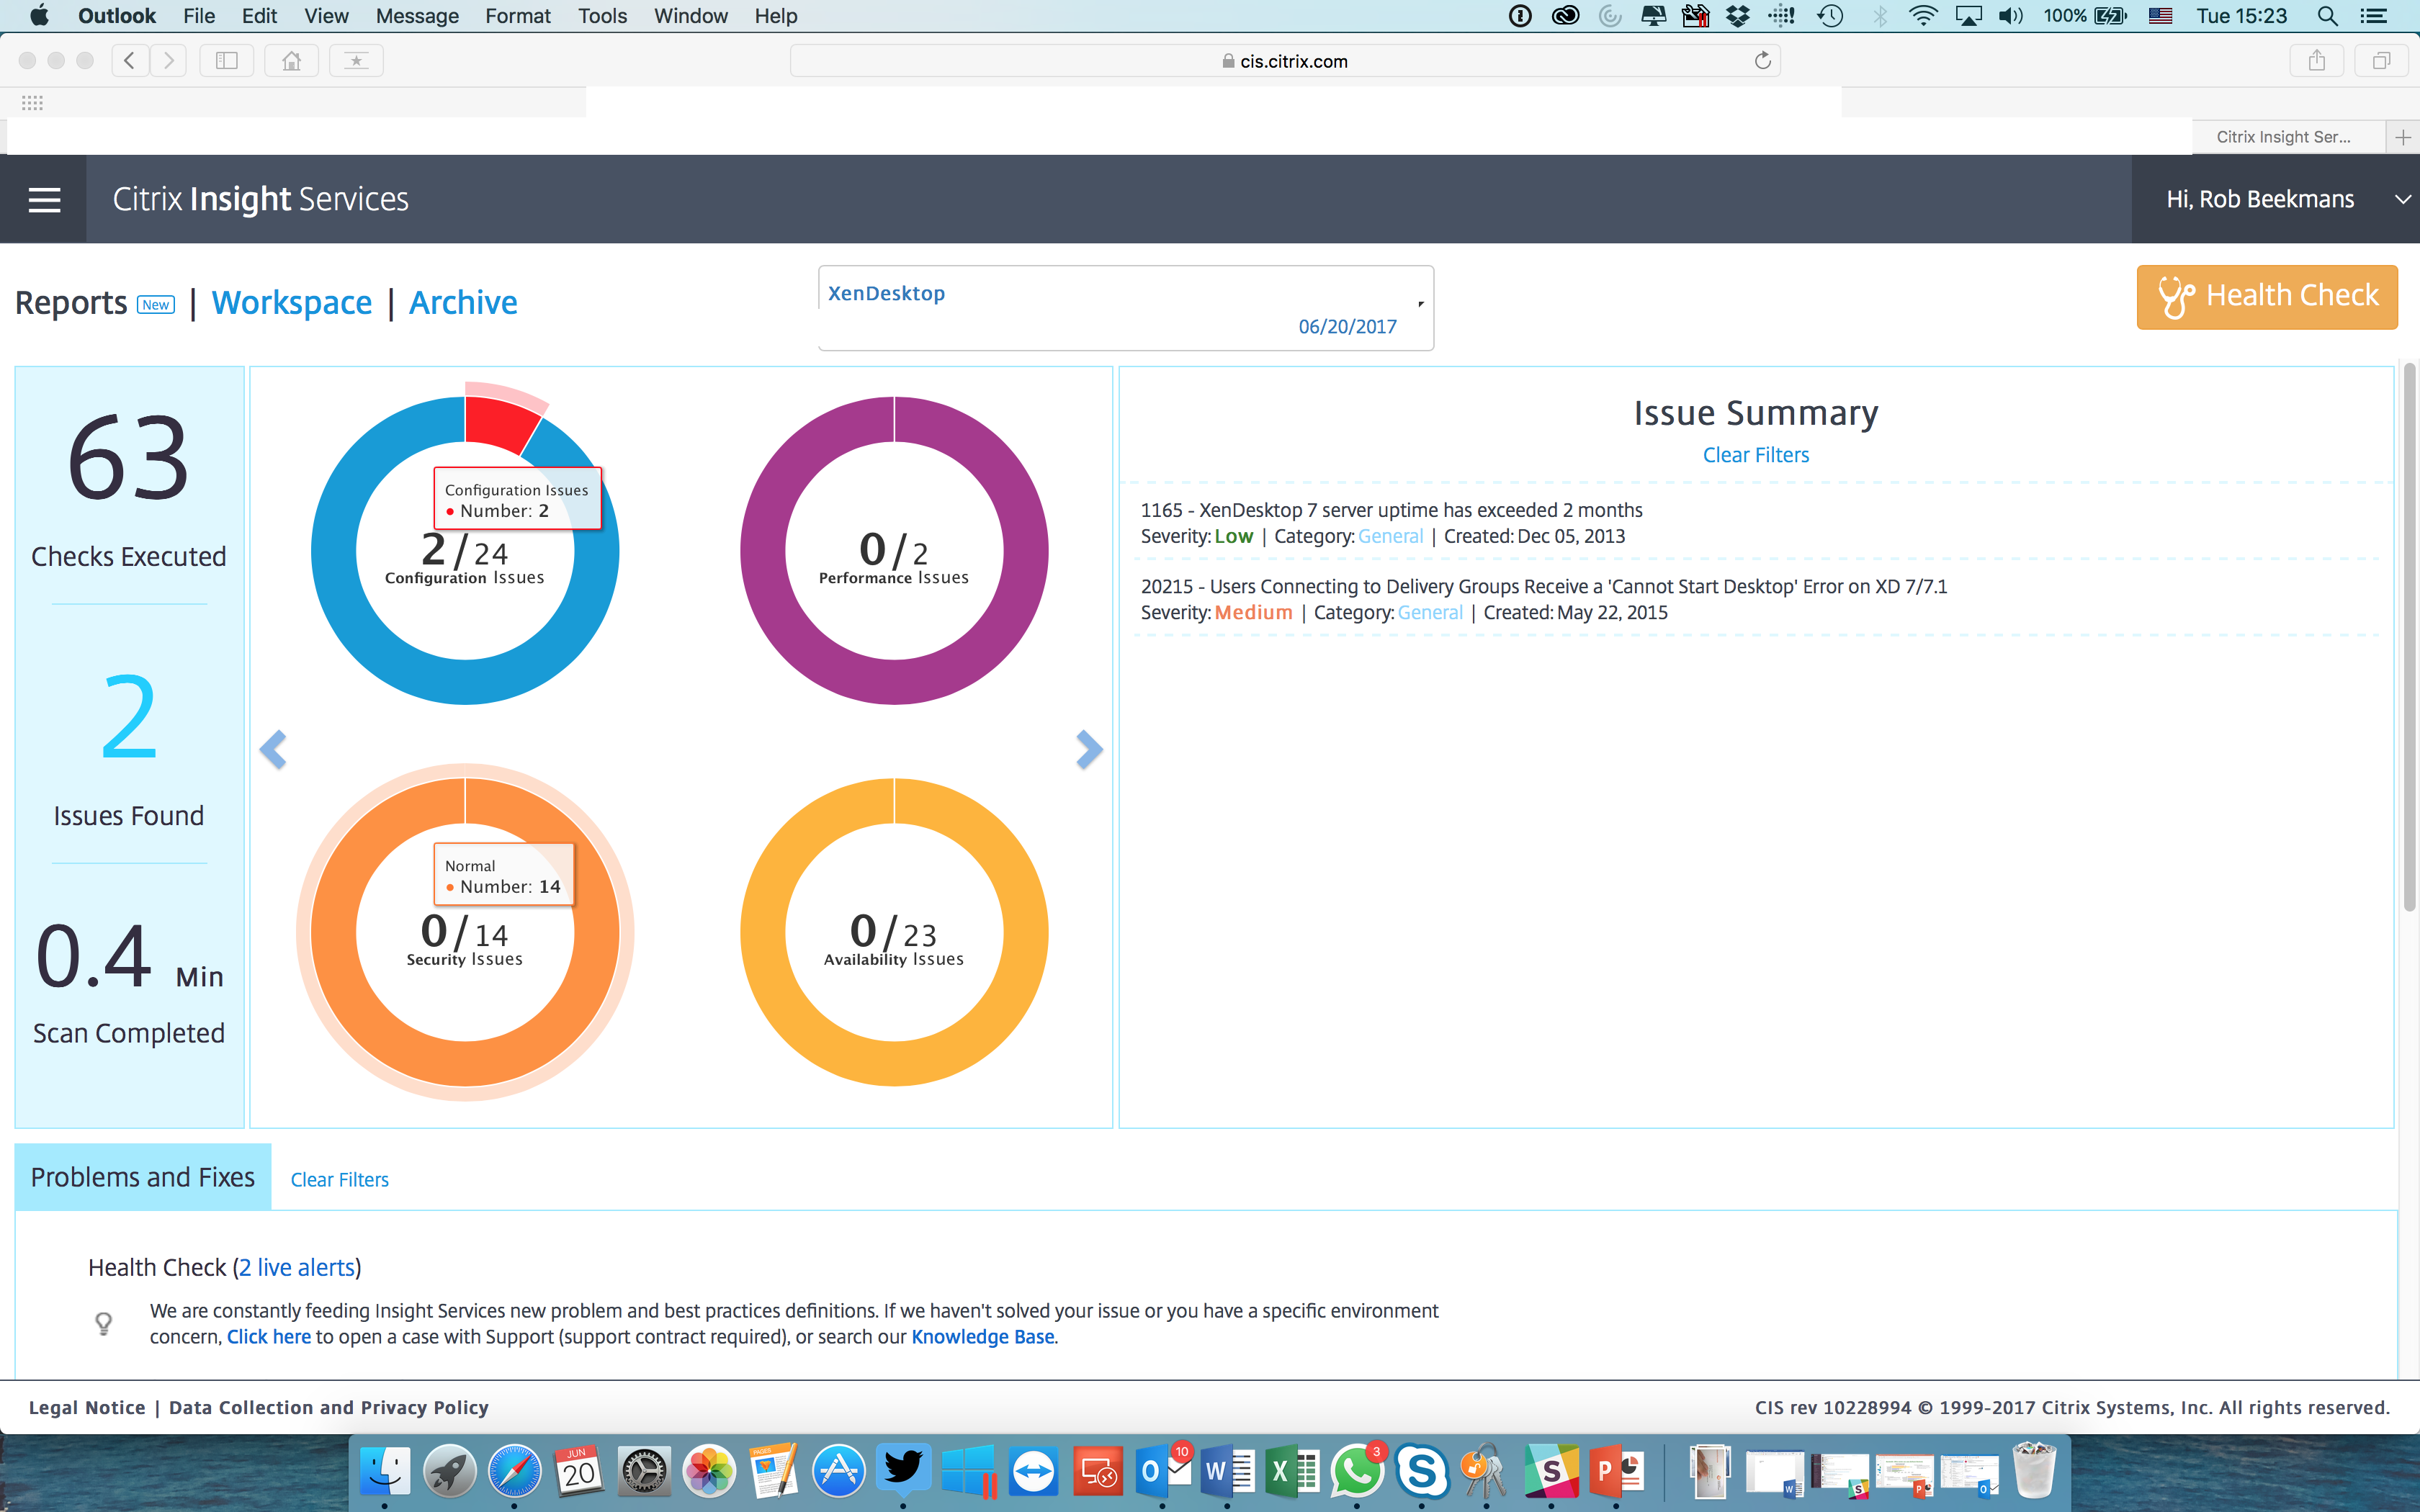 Citrix Insight service: TaaS and Scout, reporting feature and feature request